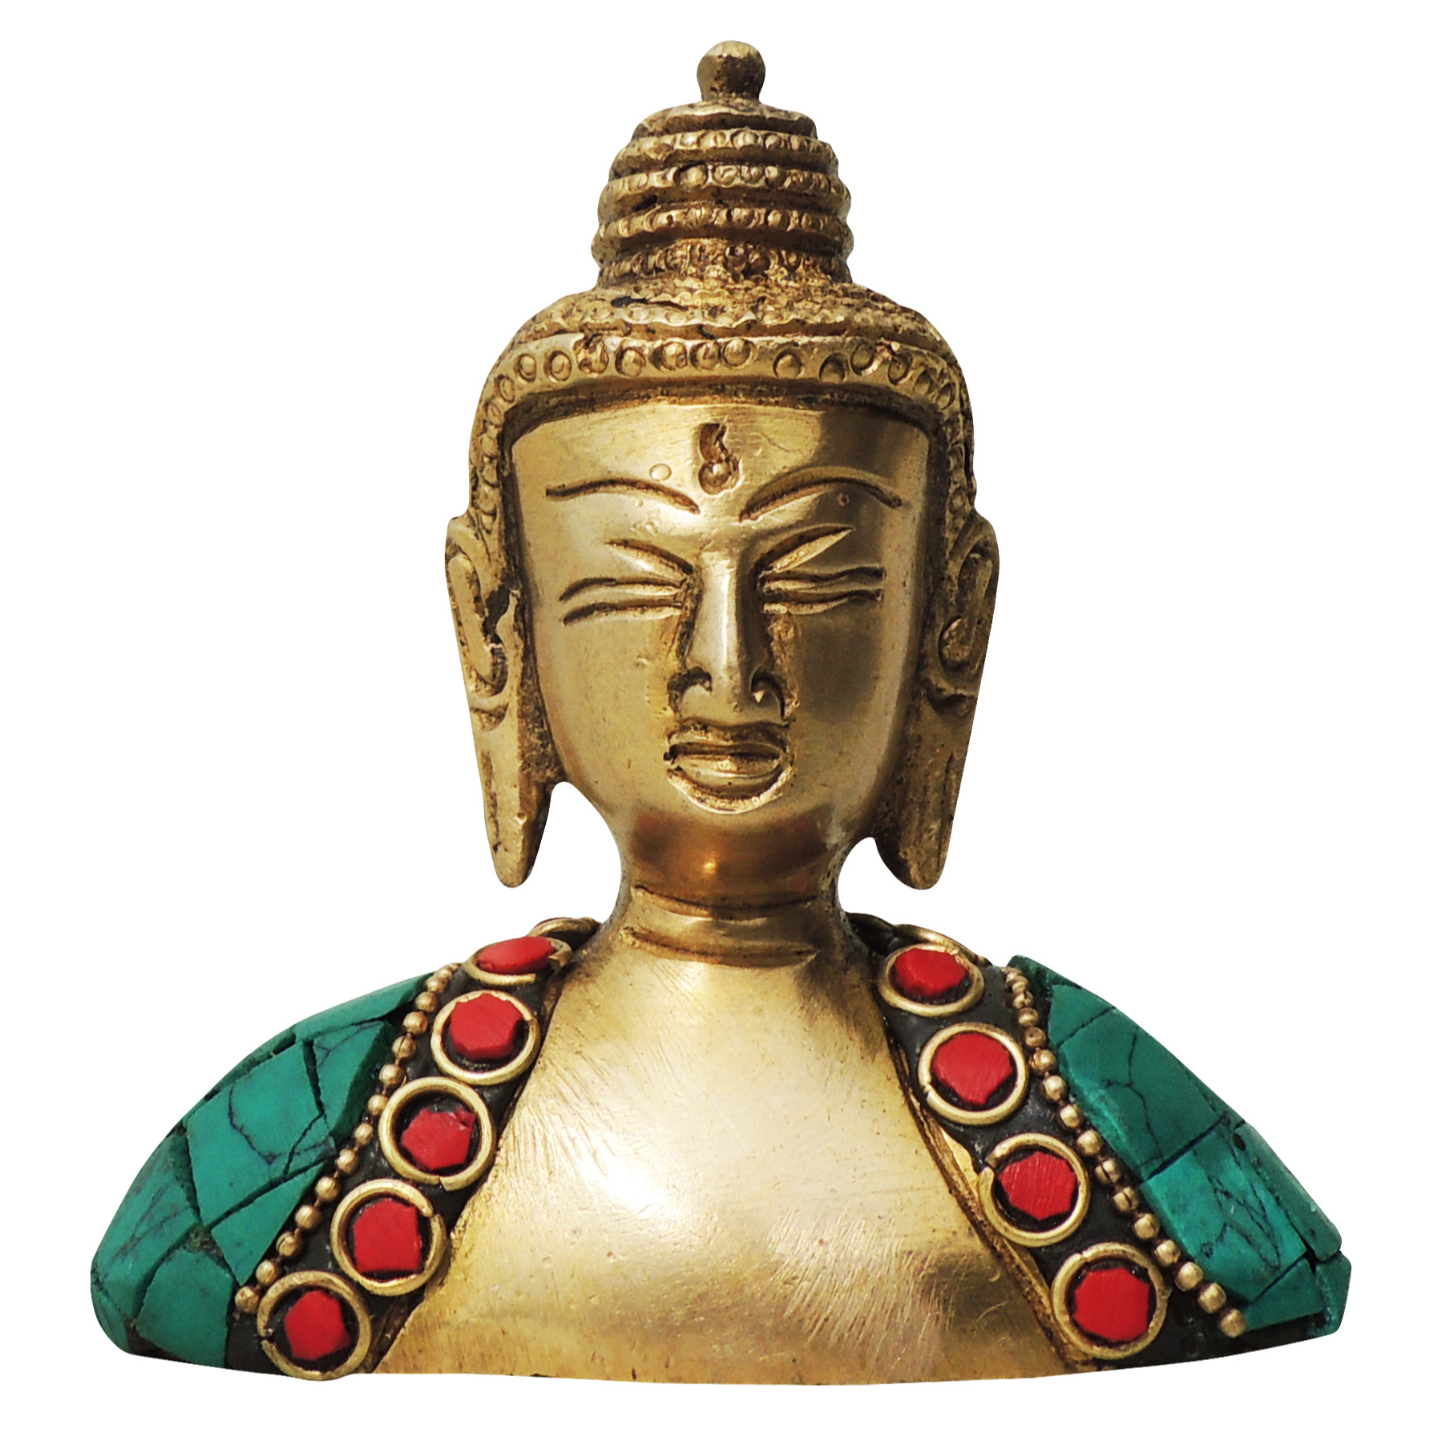 Brass Buddha Head studded with Turquoise Coral stone work - 313.5 Inch  BS840 A